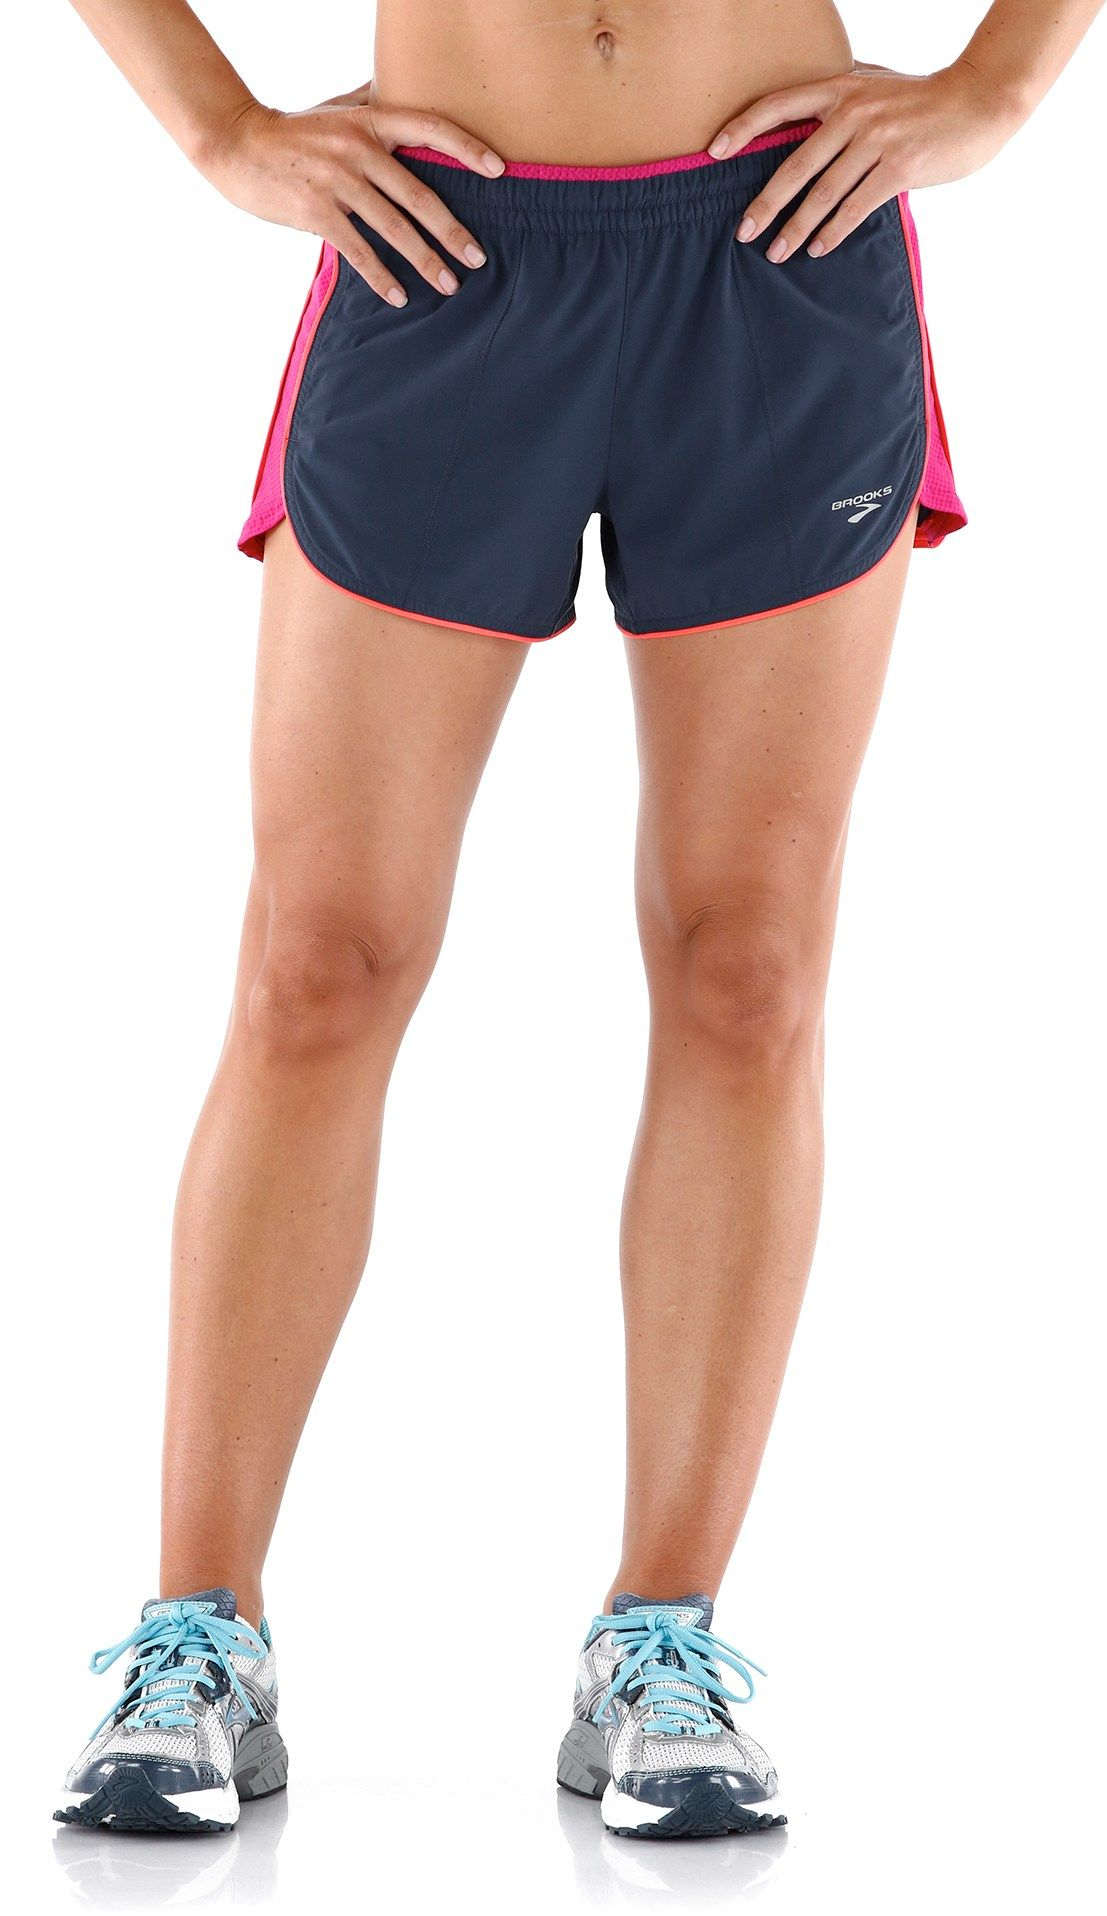 b6a2bd9ad10 Built with a colorful waistband you can roll down for a touch of style  while you train—the women s Brooks Epiphany Stretch Shorts III.